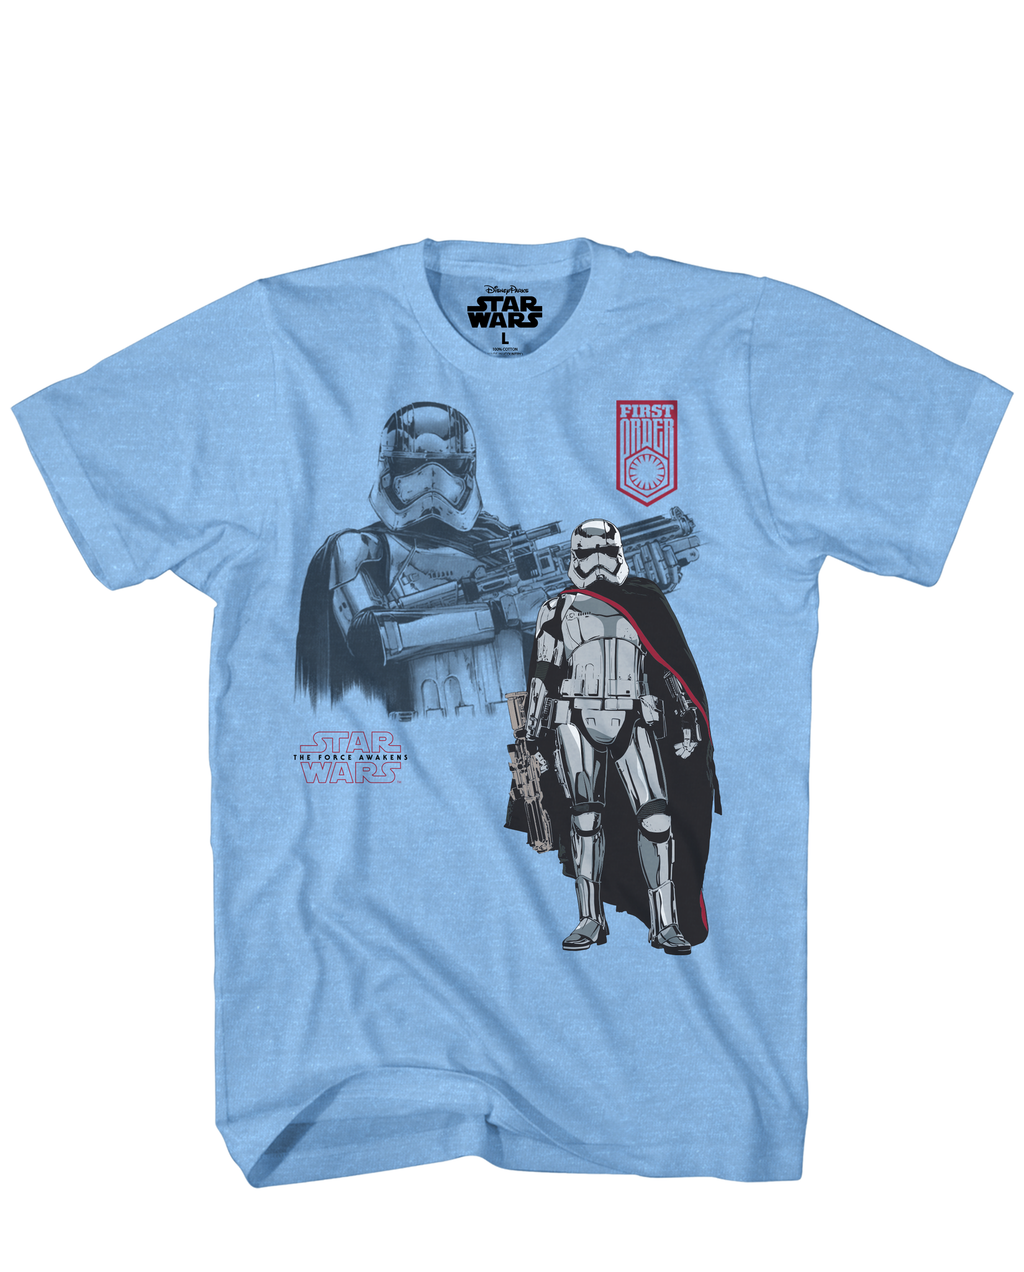 Star Wars The Force Awakens:  Leader of the Troops - First Person Clothing